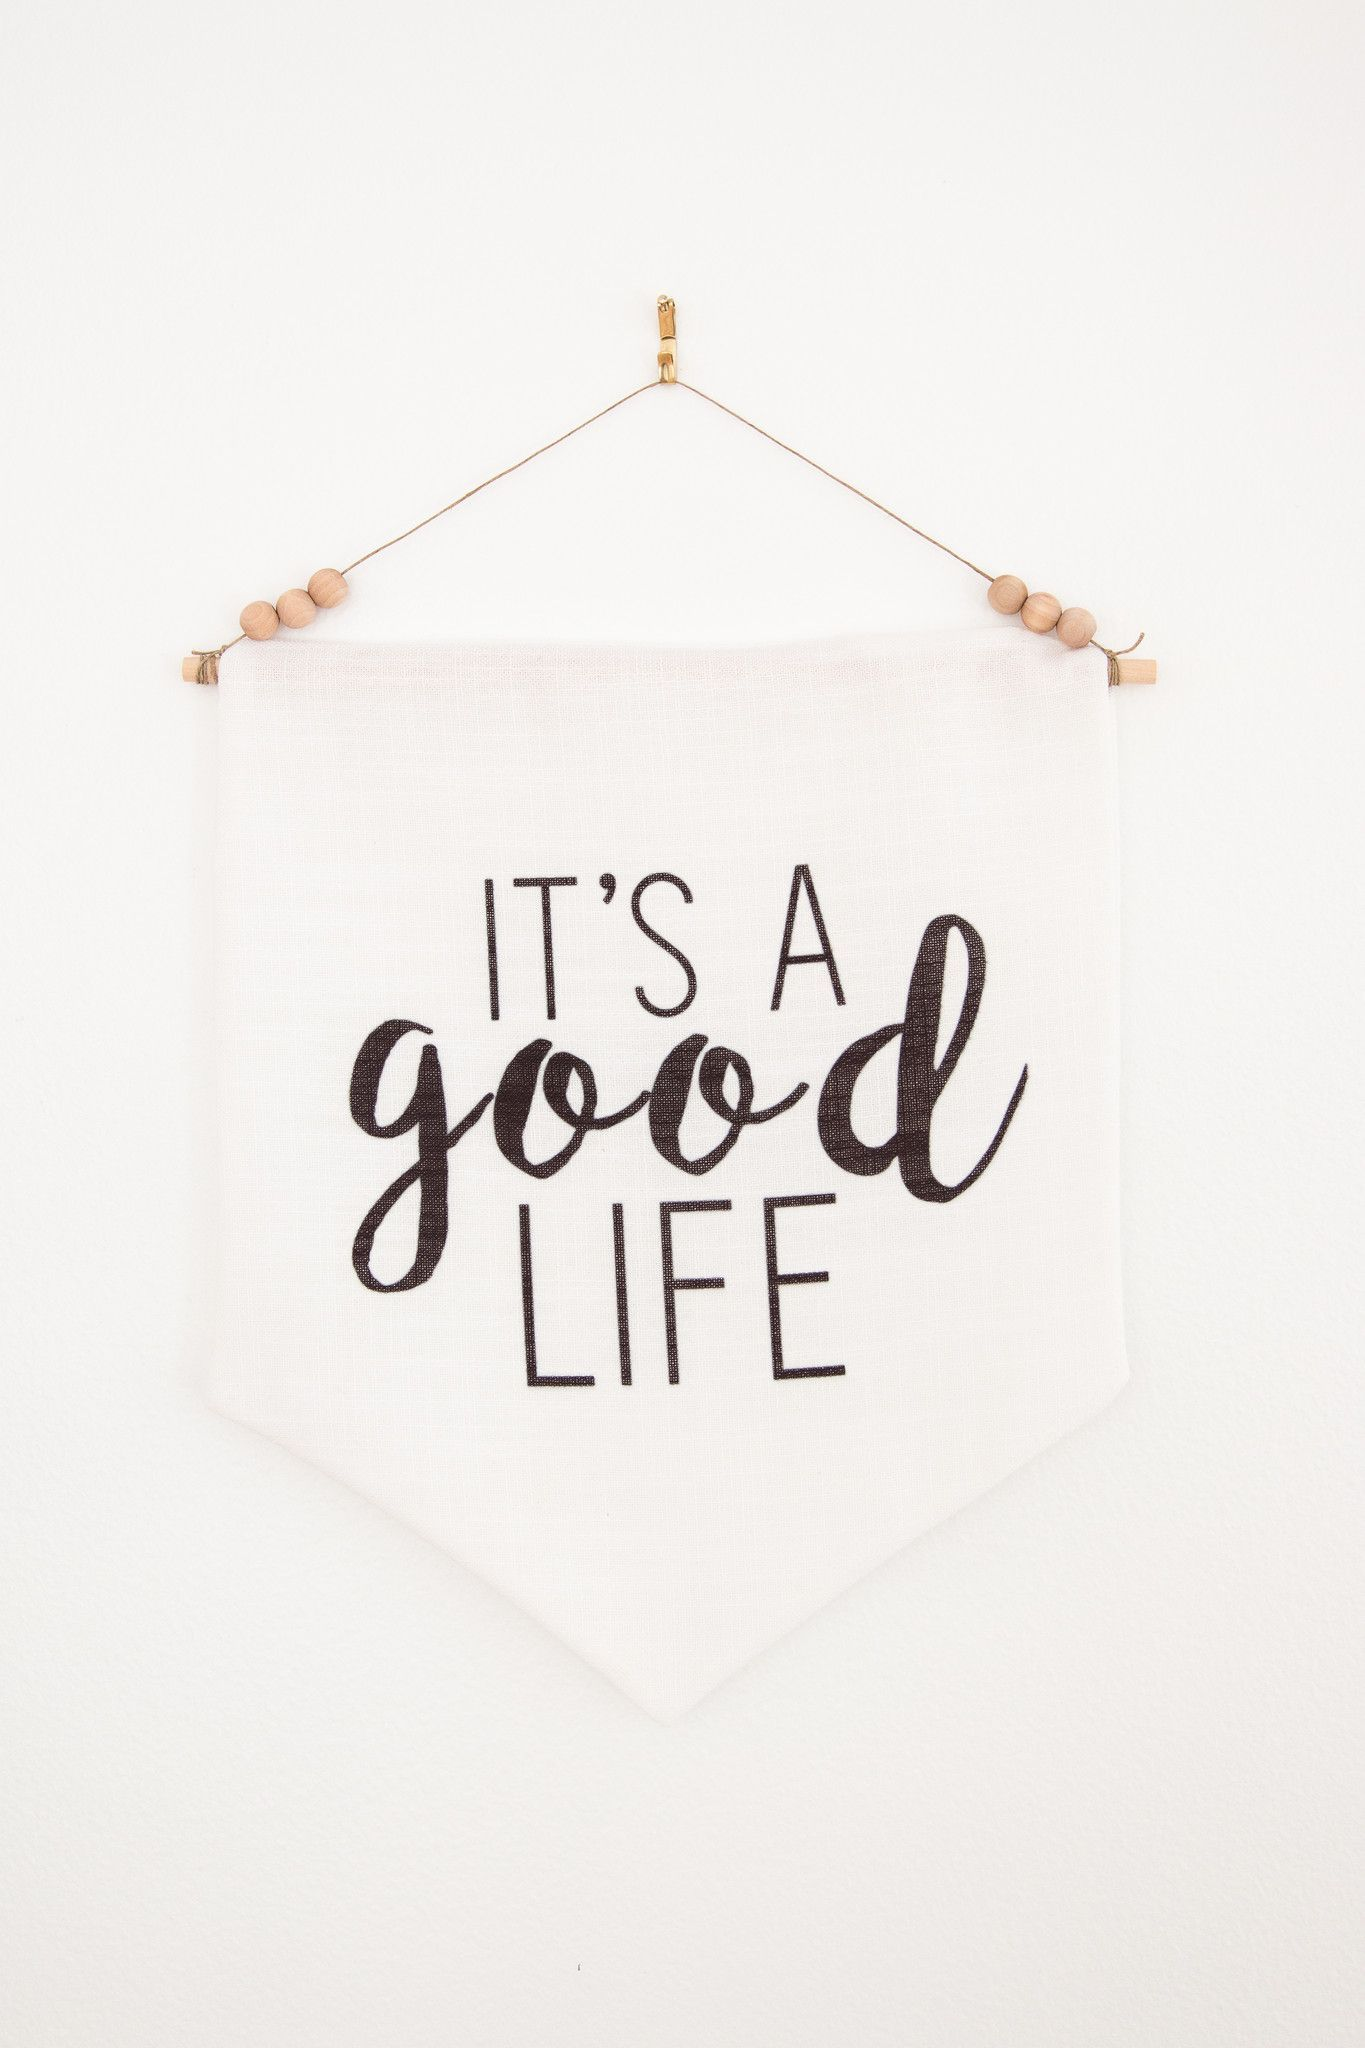 Its a good life 12x14 wall pennant life is good modern its a good life 12x14 wall pennant life is good modern minimalist home decor amipublicfo Gallery